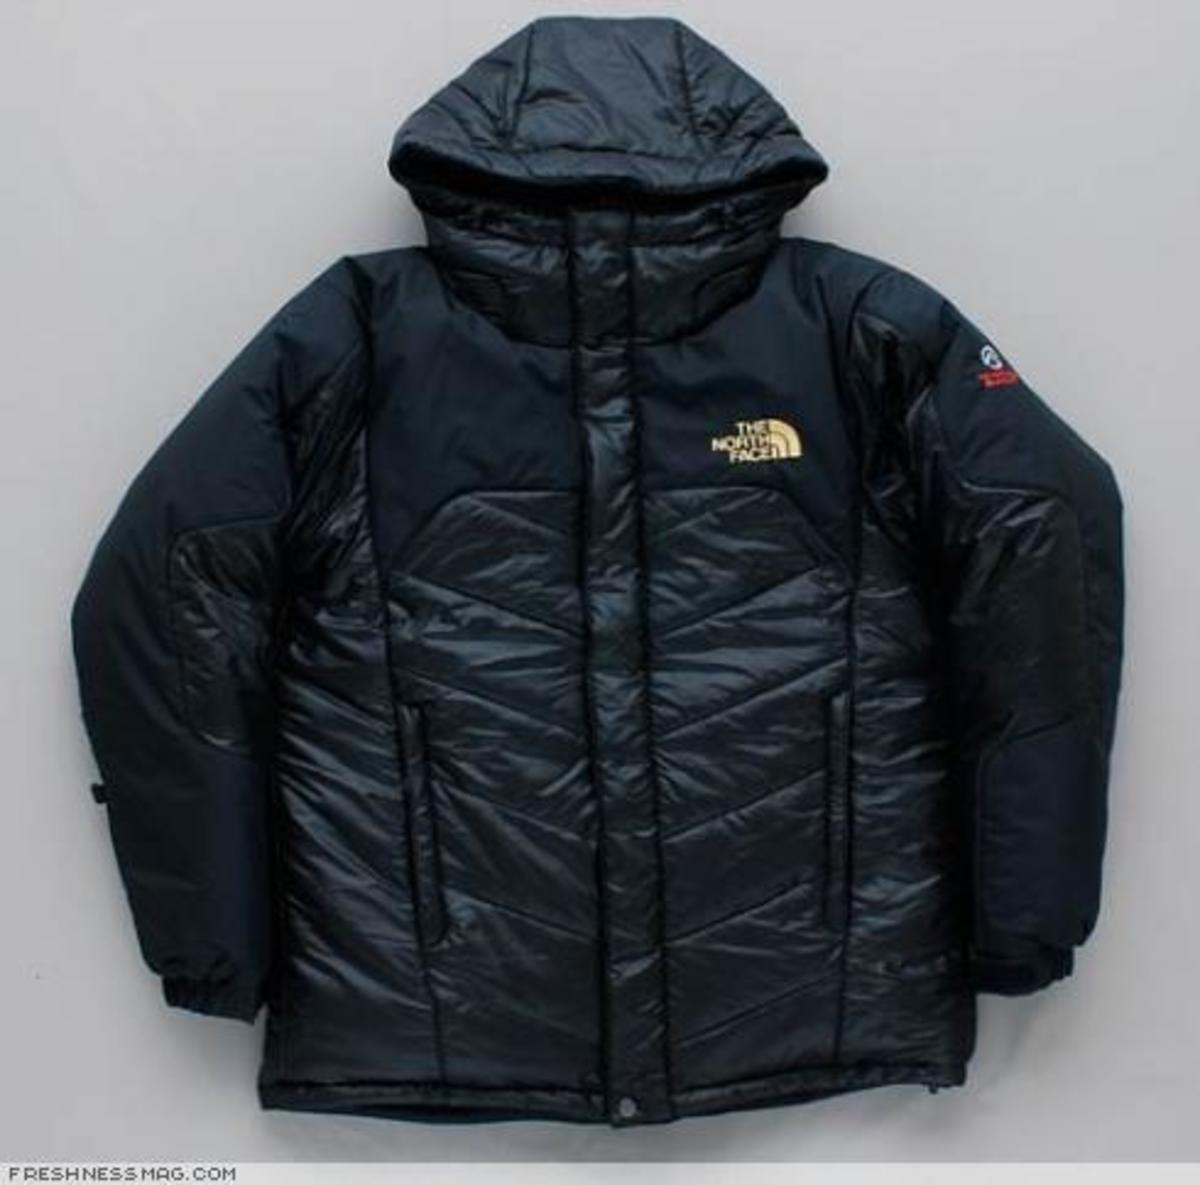 SWAGGER x The North Face - 5